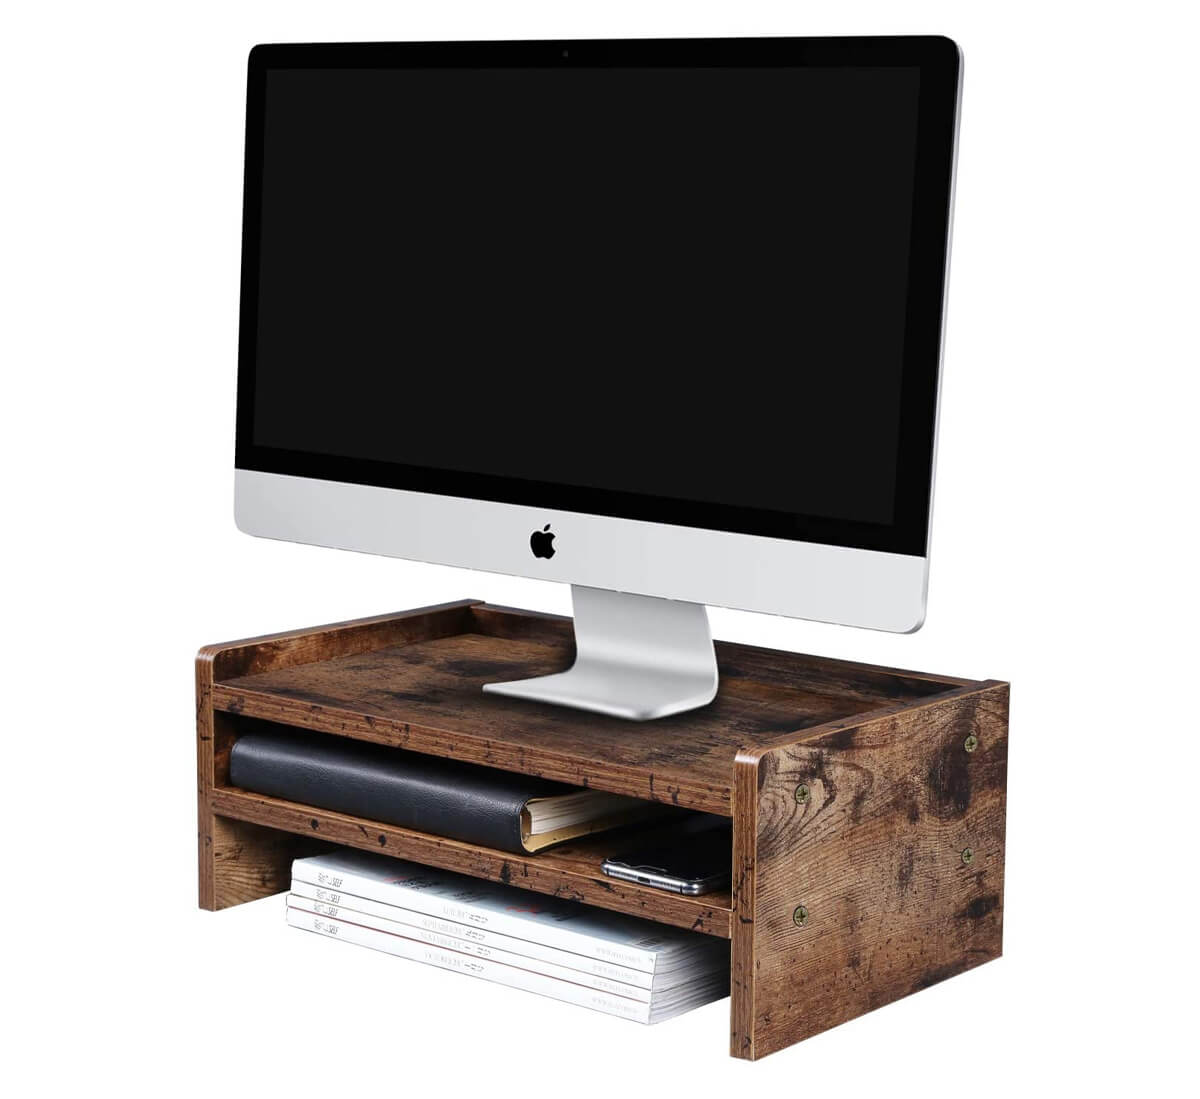 OROPY Wood Monitor Stand Riser